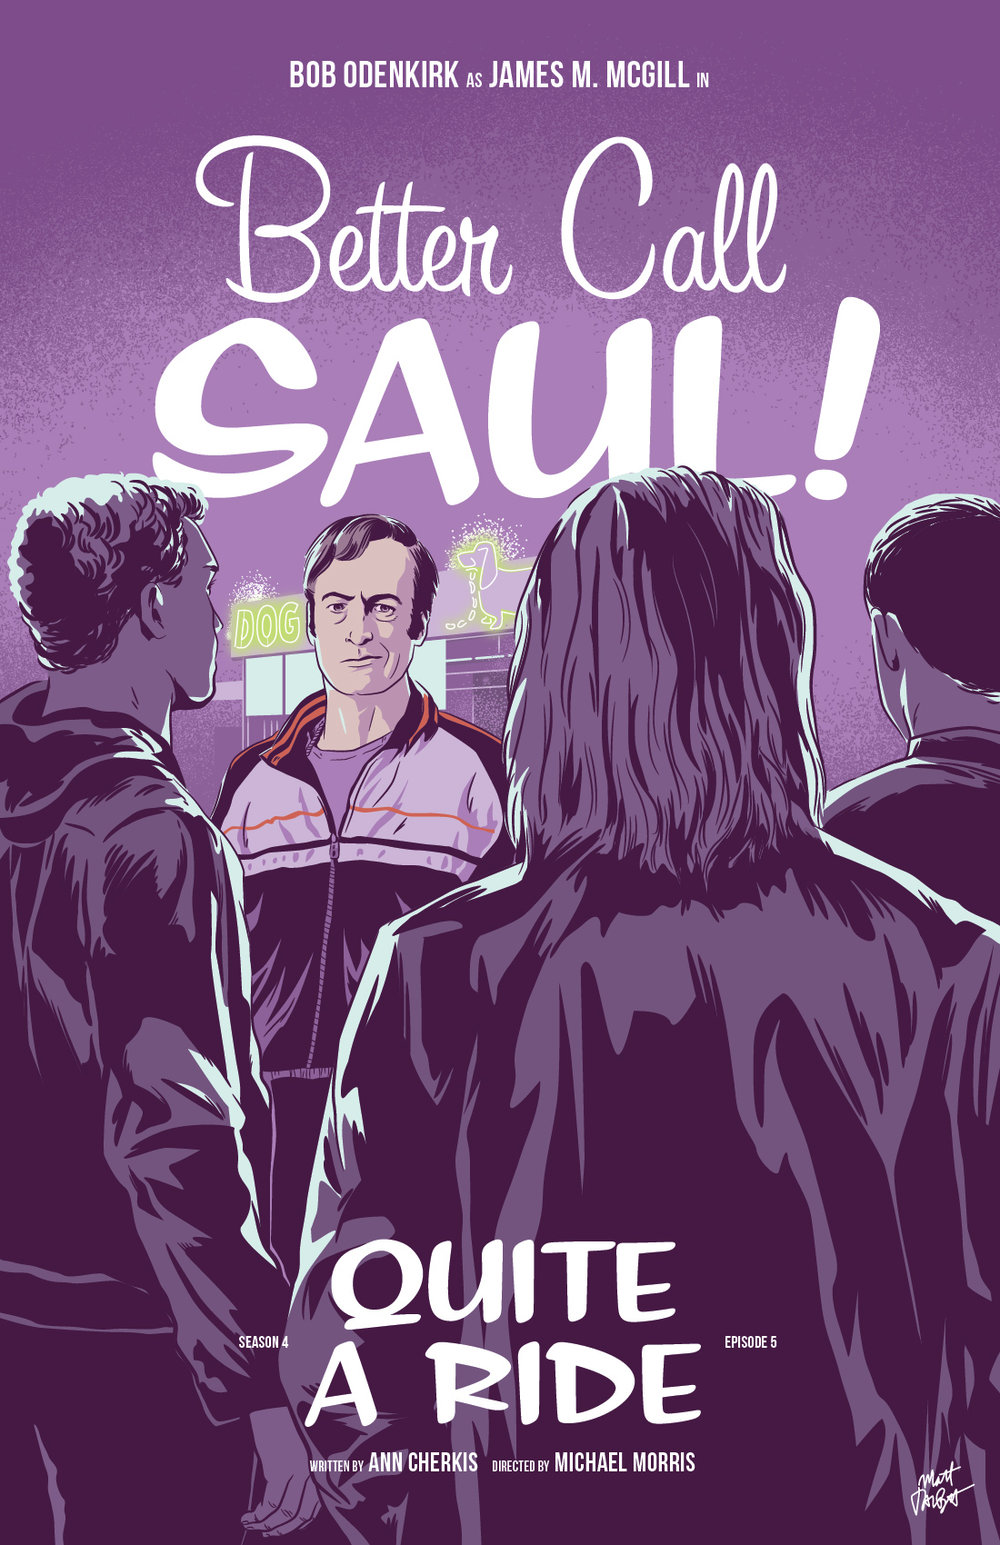 Better Call Saul Season 4 Episode 5, Quite A Ride, poster by Matt Talbot